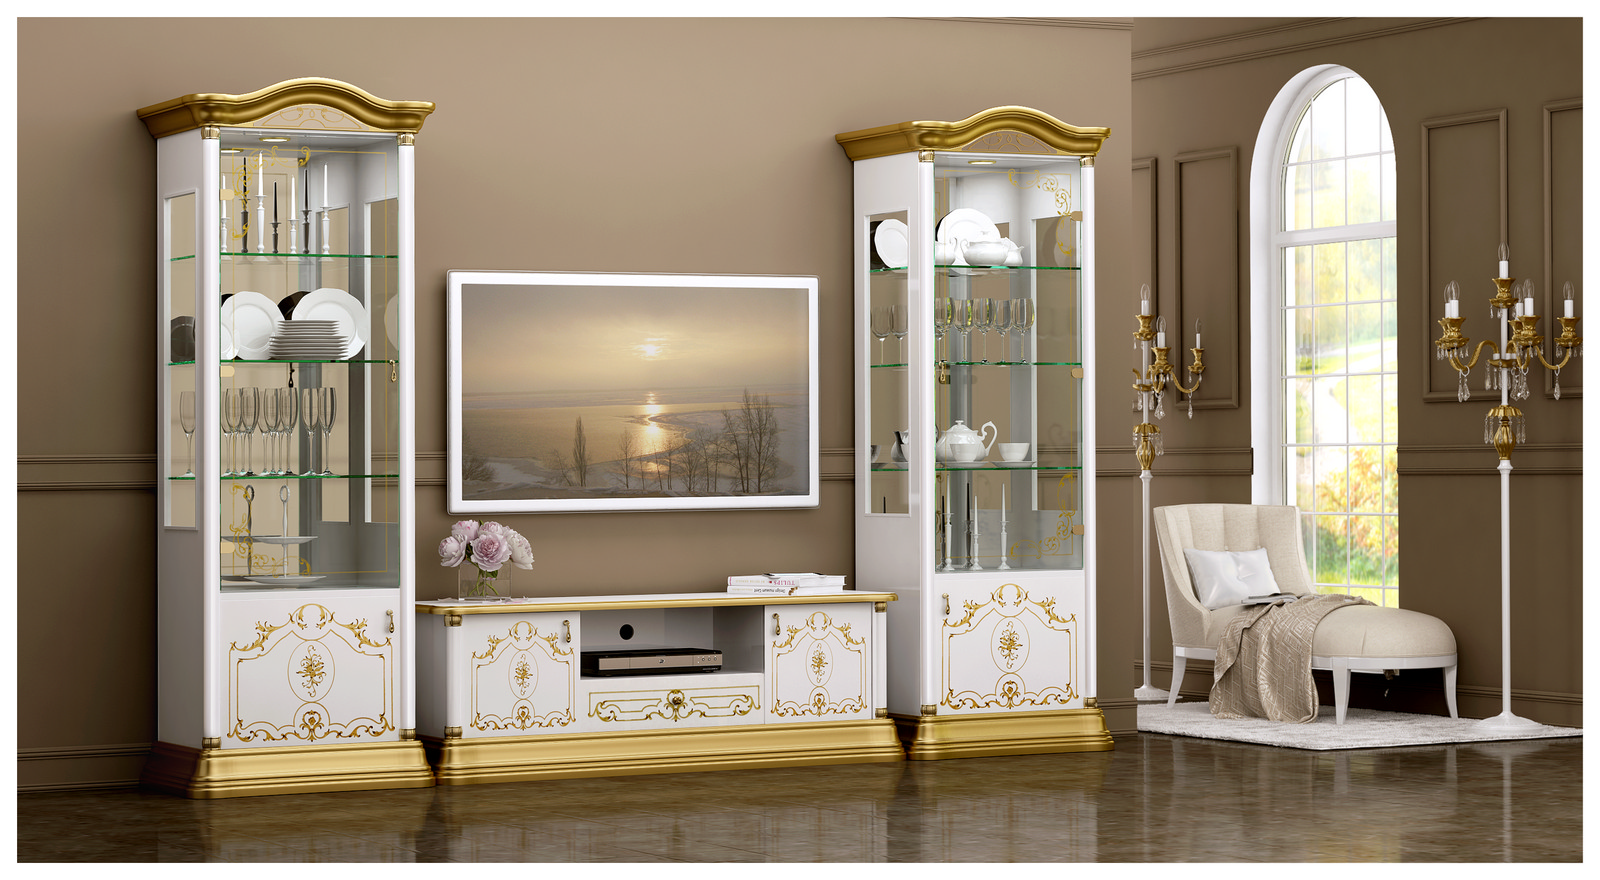 wohnwand rozza wei gold vitrinen tv schrank barock klassik roz 103. Black Bedroom Furniture Sets. Home Design Ideas